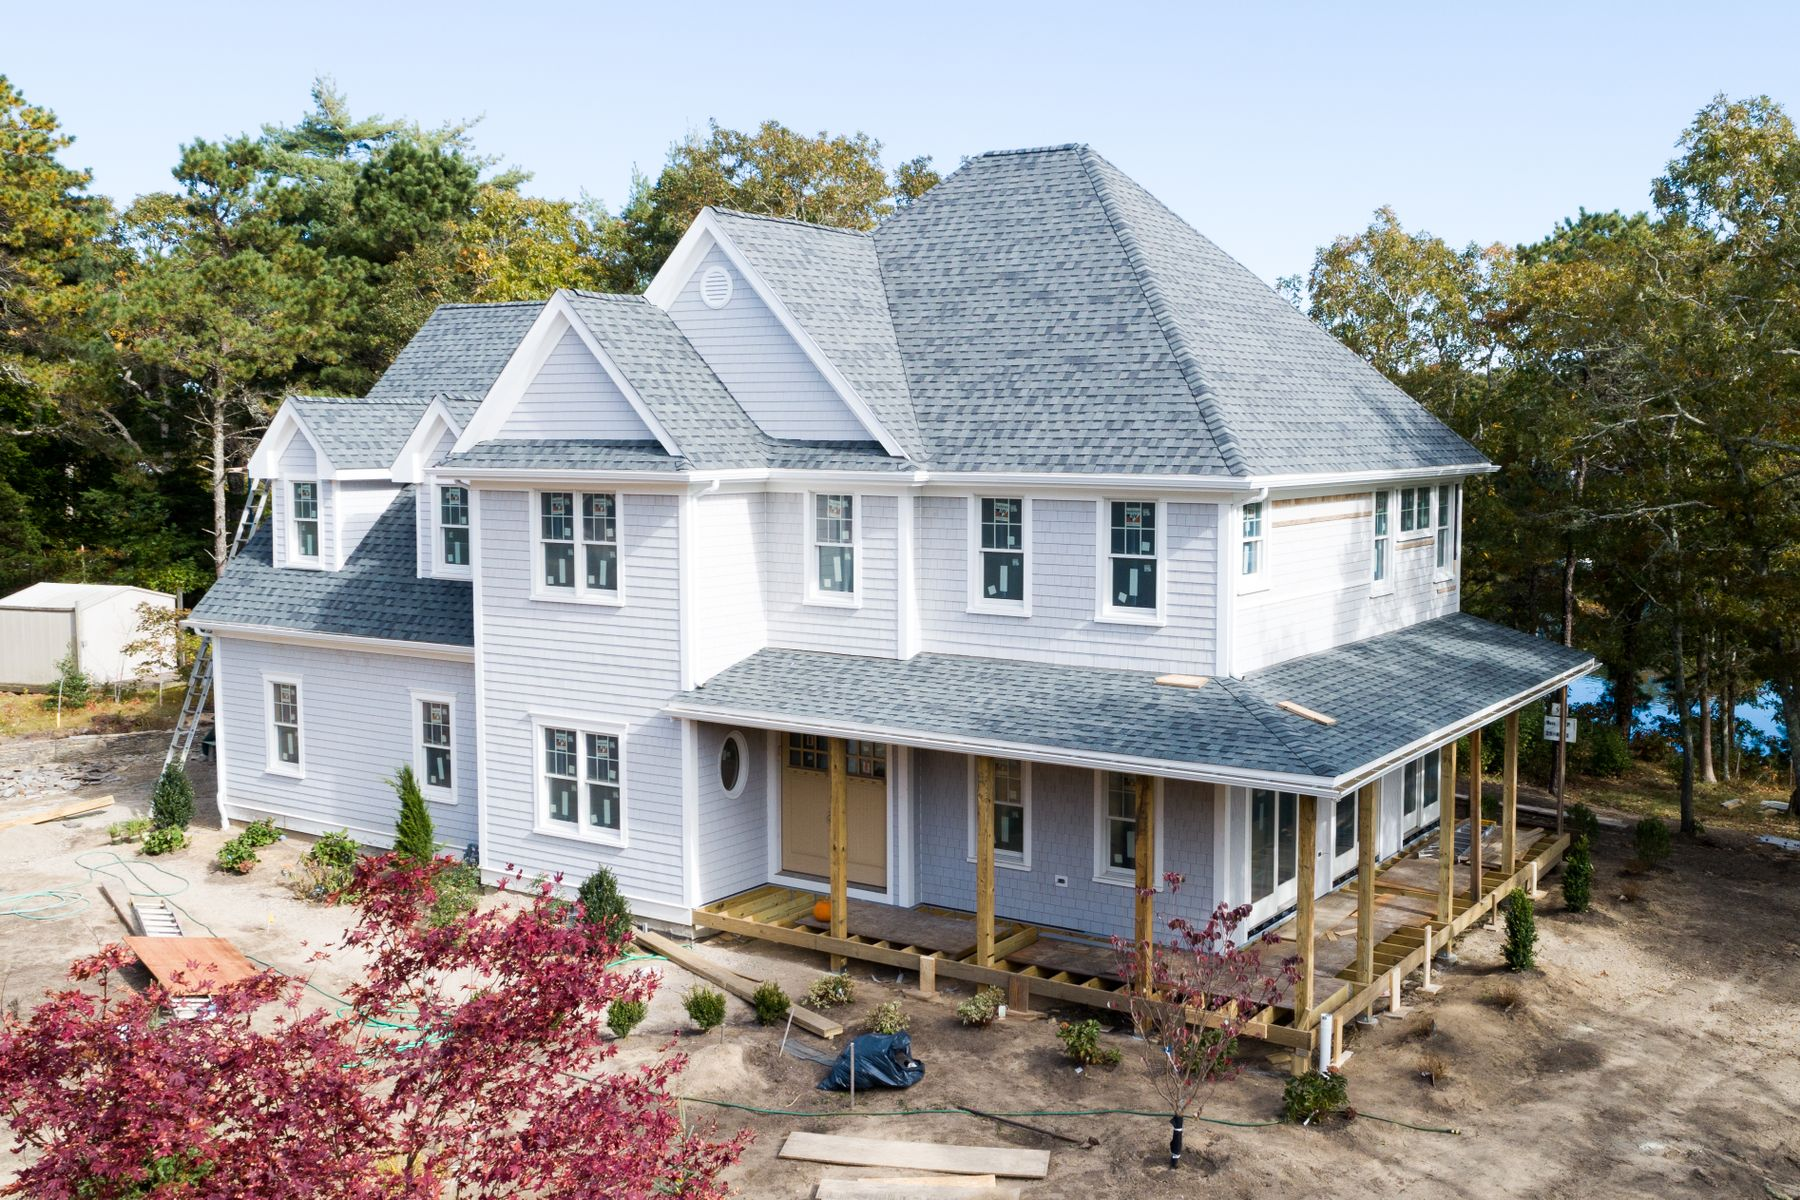 Single Family Home for Active at 51 Tobey Lane East Falmouth, Massachusetts 02536 United States